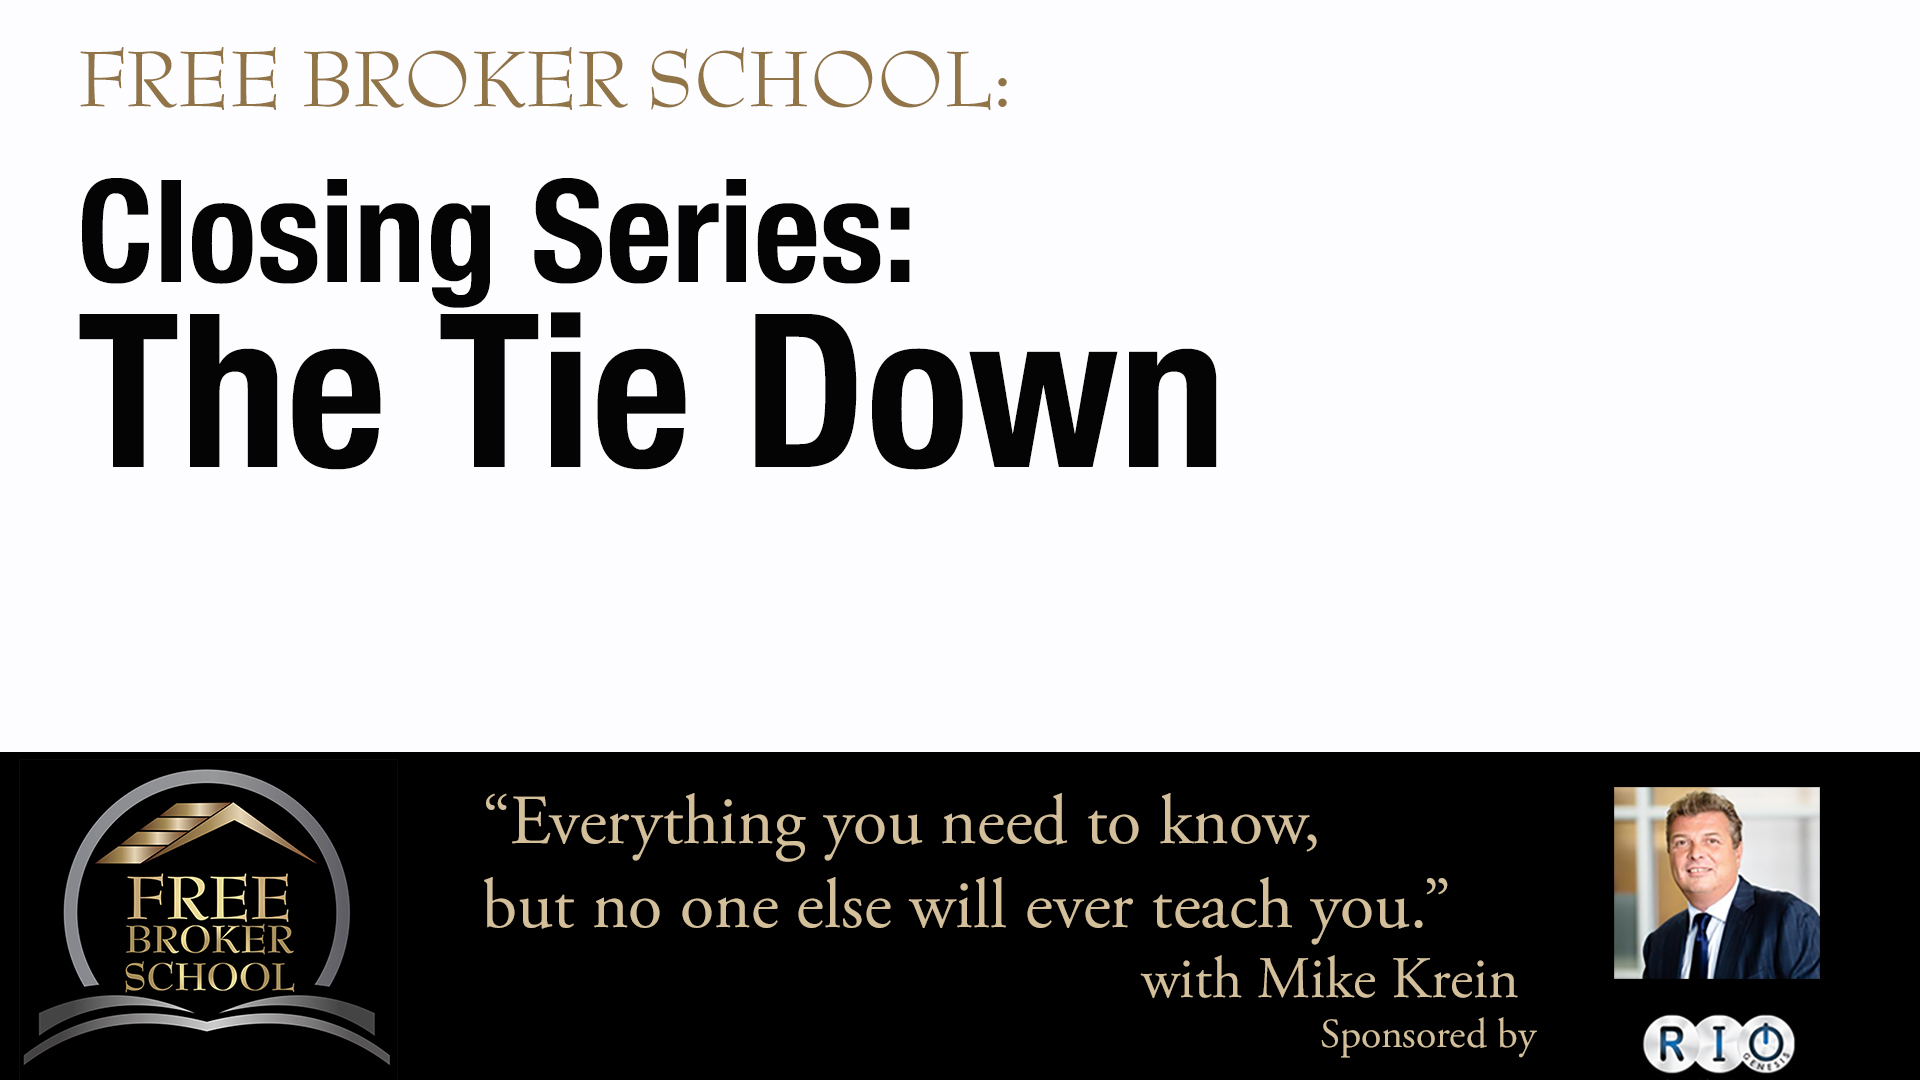 Free Broker School - Closing Series: The Tie Down